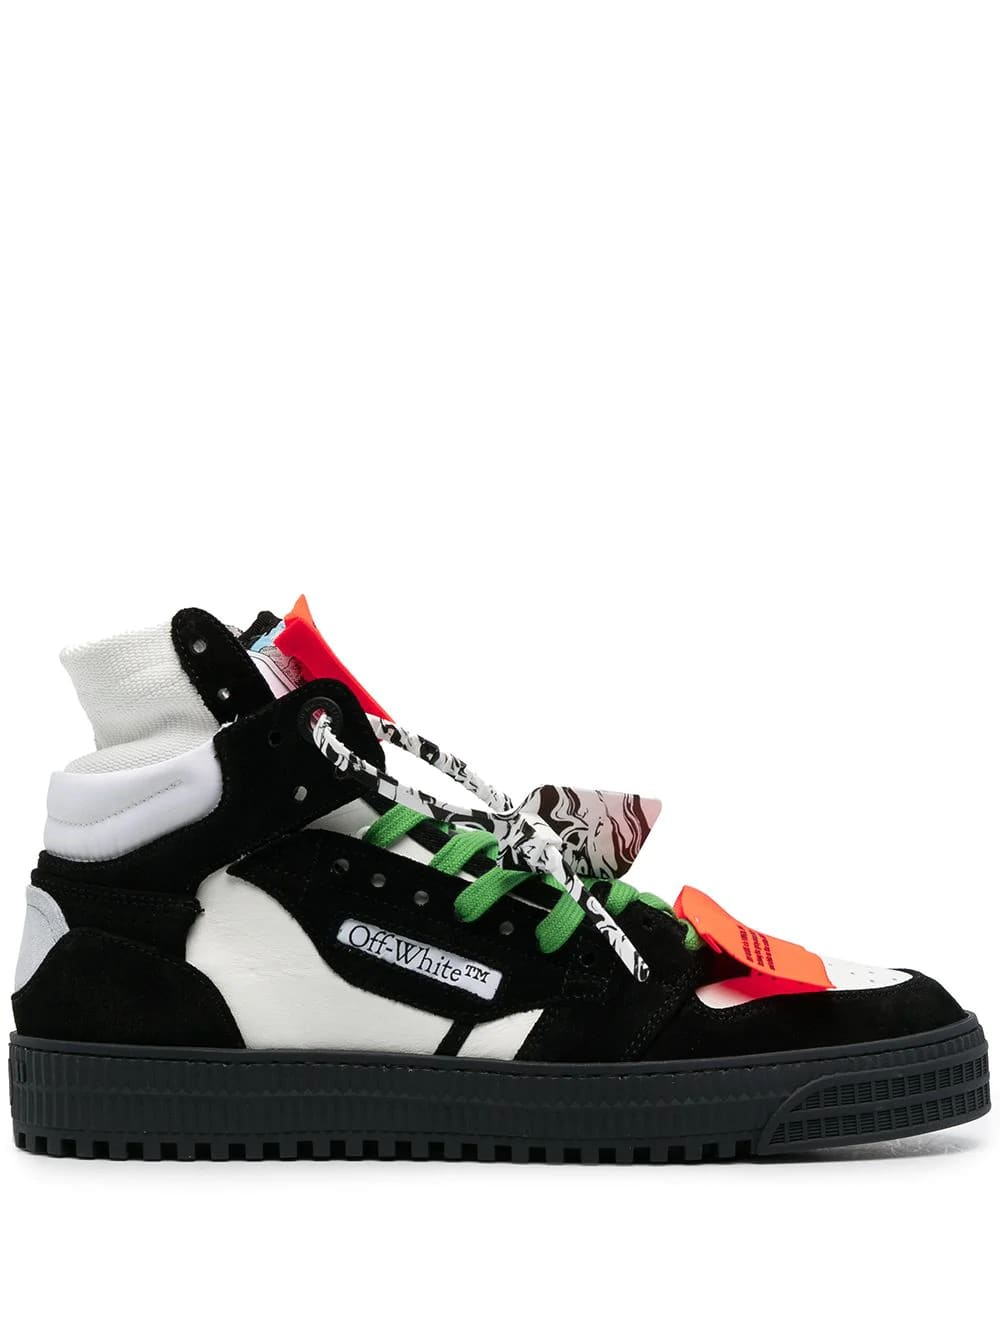 Off-White Man off-court 3.0 Sneakers